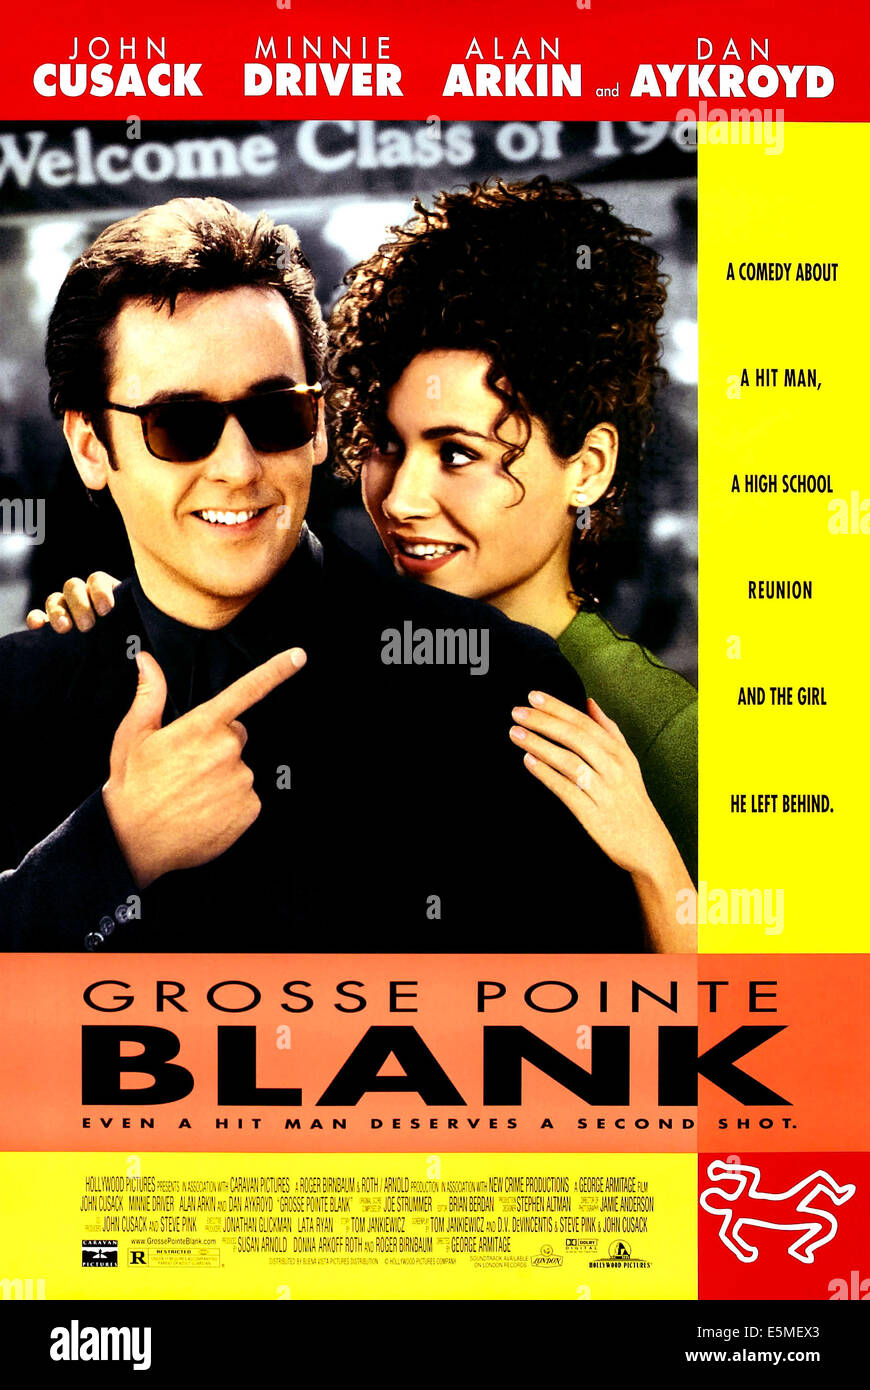 GROSSE POINTE BLANK, l-r: John Cusack, Minnie Driver on poster art, 1997, ©Buena Vista Pictures/courtesy Everett - Stock Image